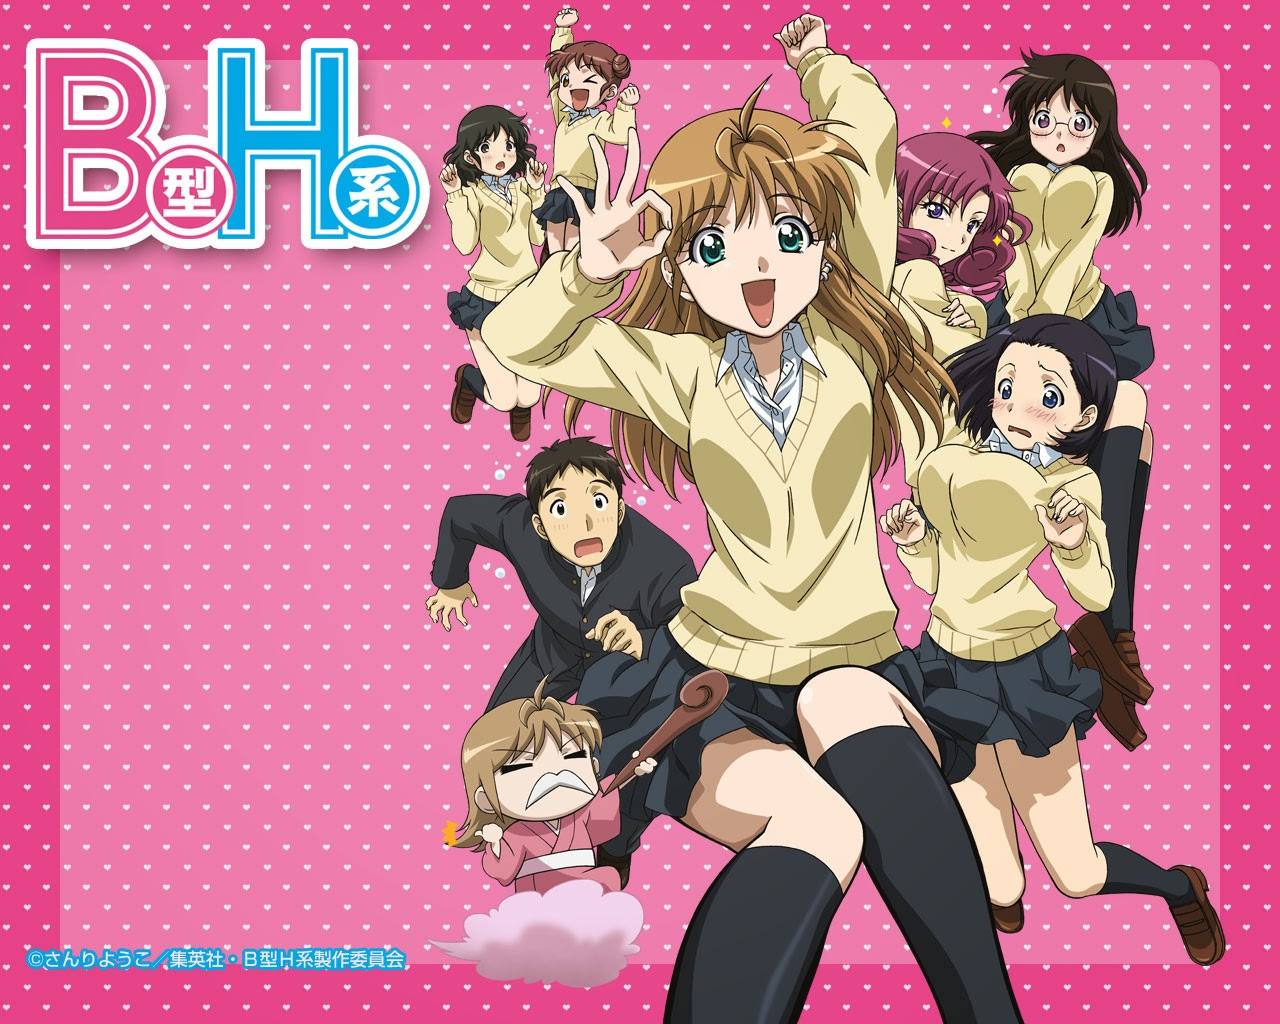 Just Because 3 Hey Children Under 18 Dont Watch This Okay P In Anime The Protagonist Are 2 Both Girl And Boy